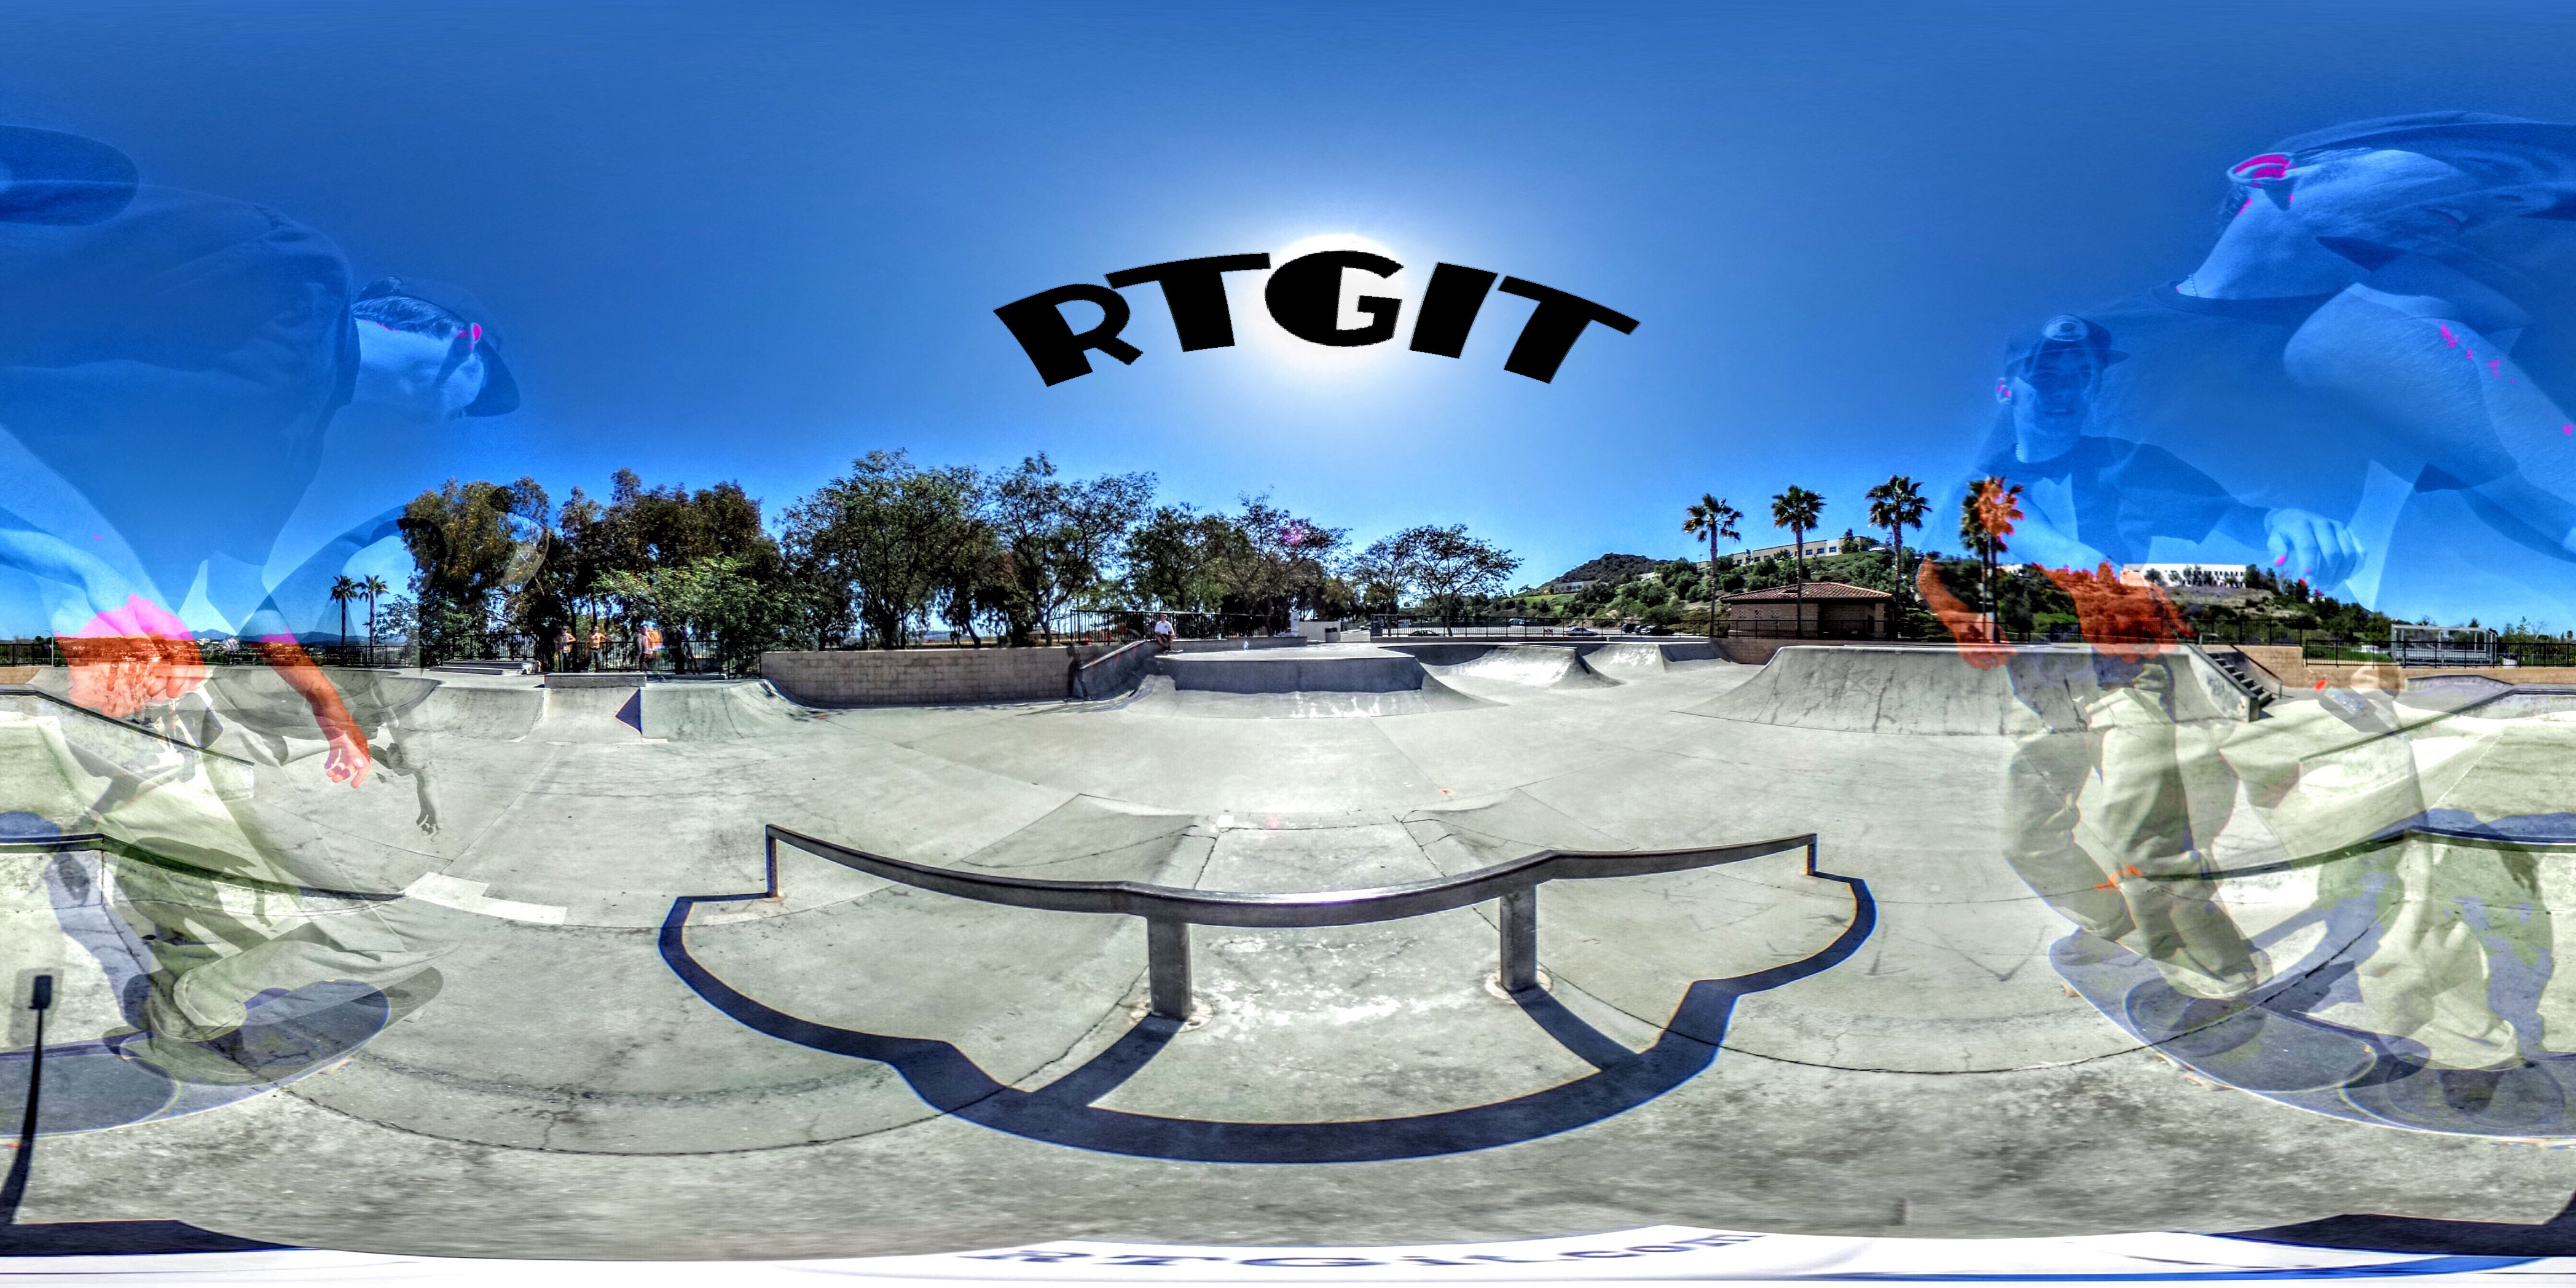 Photo: San Clemente 360 project Click on the image to explore in all directions